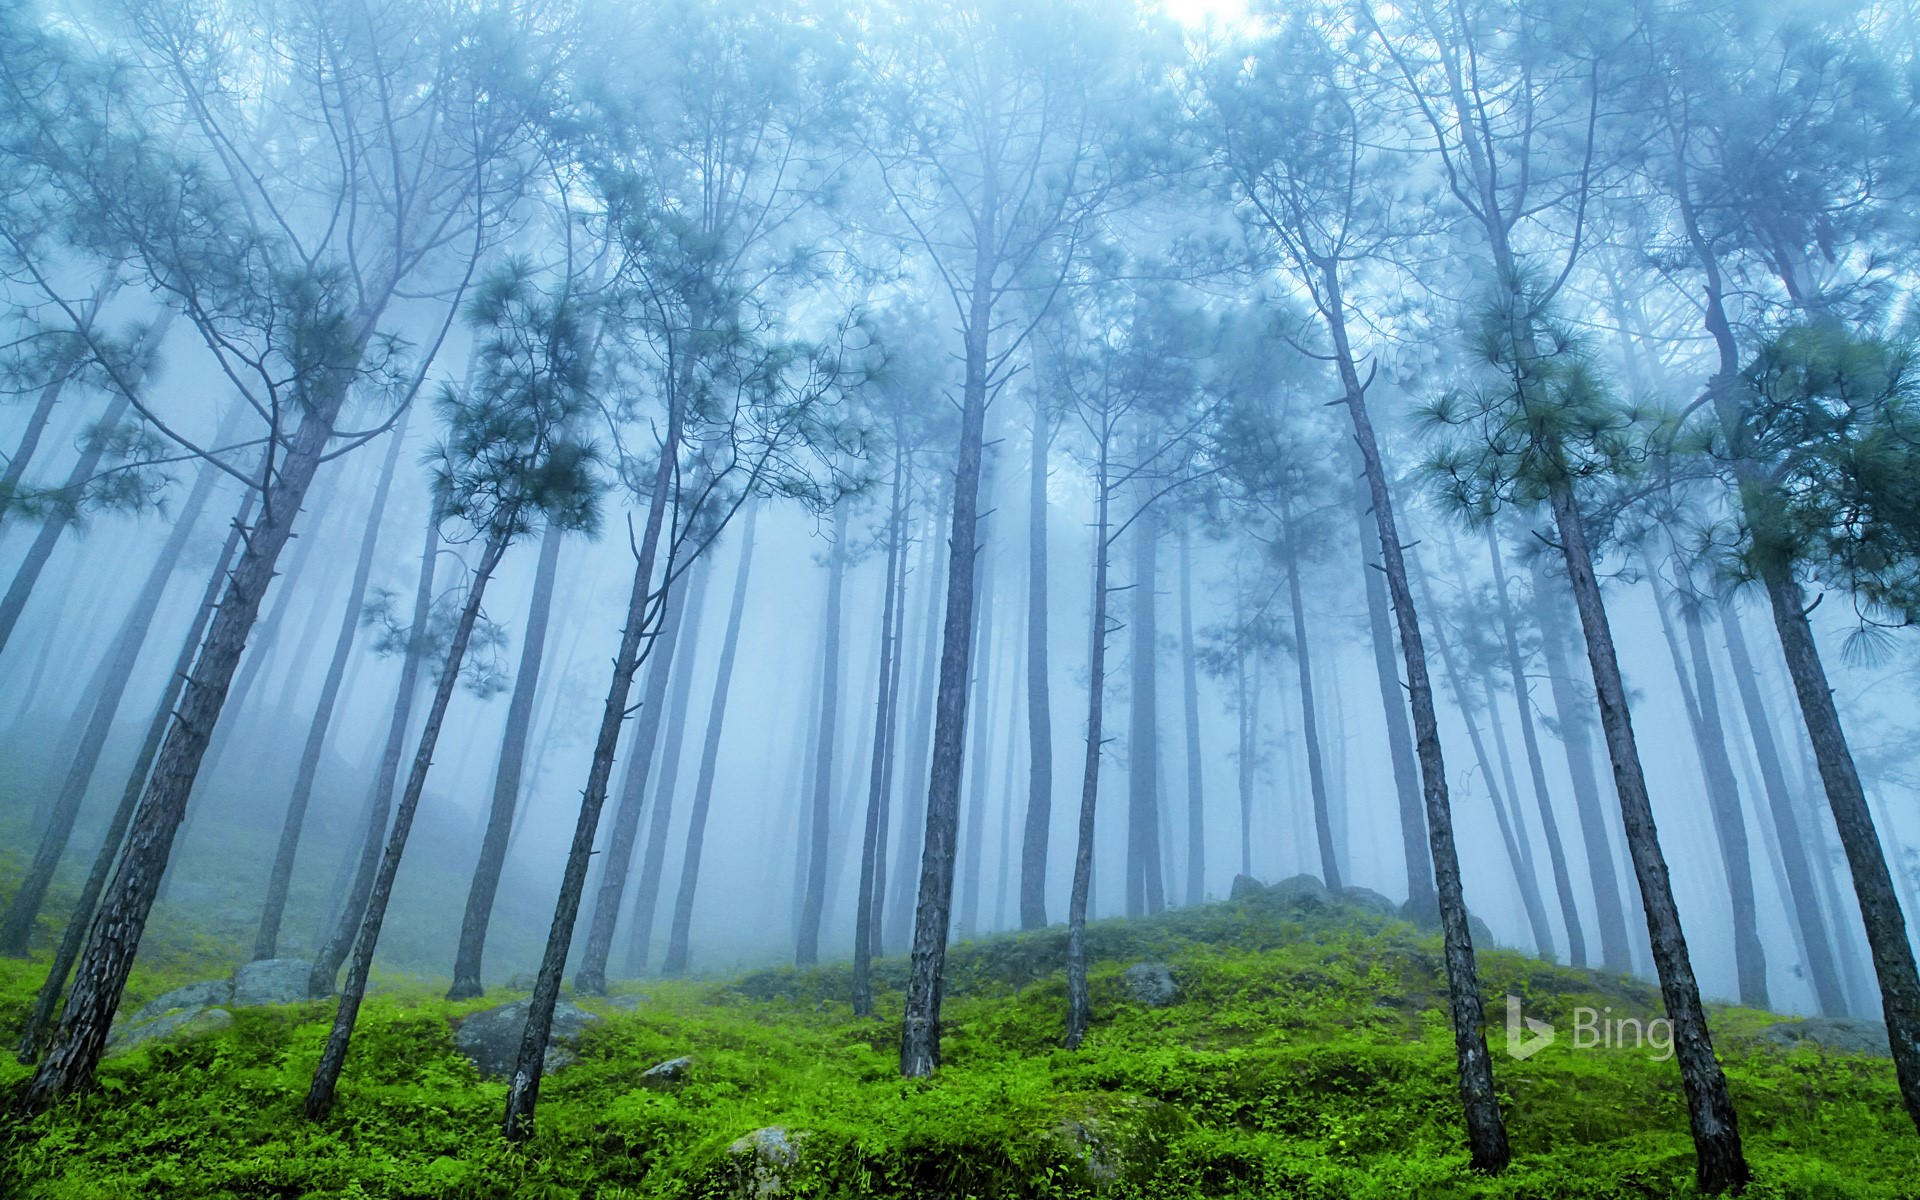 Pine forest in the Himalaya Range, Almora, Ranikhet, India